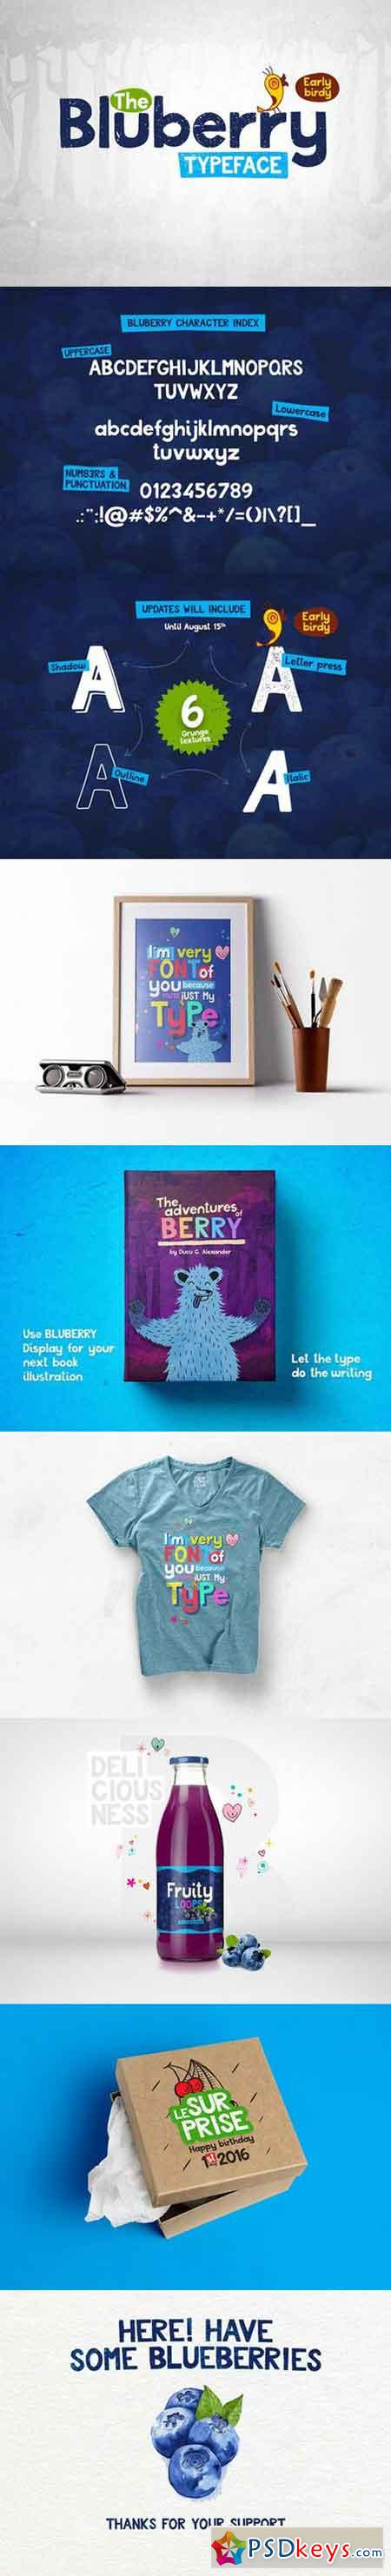 Bluberry Typeface 788238